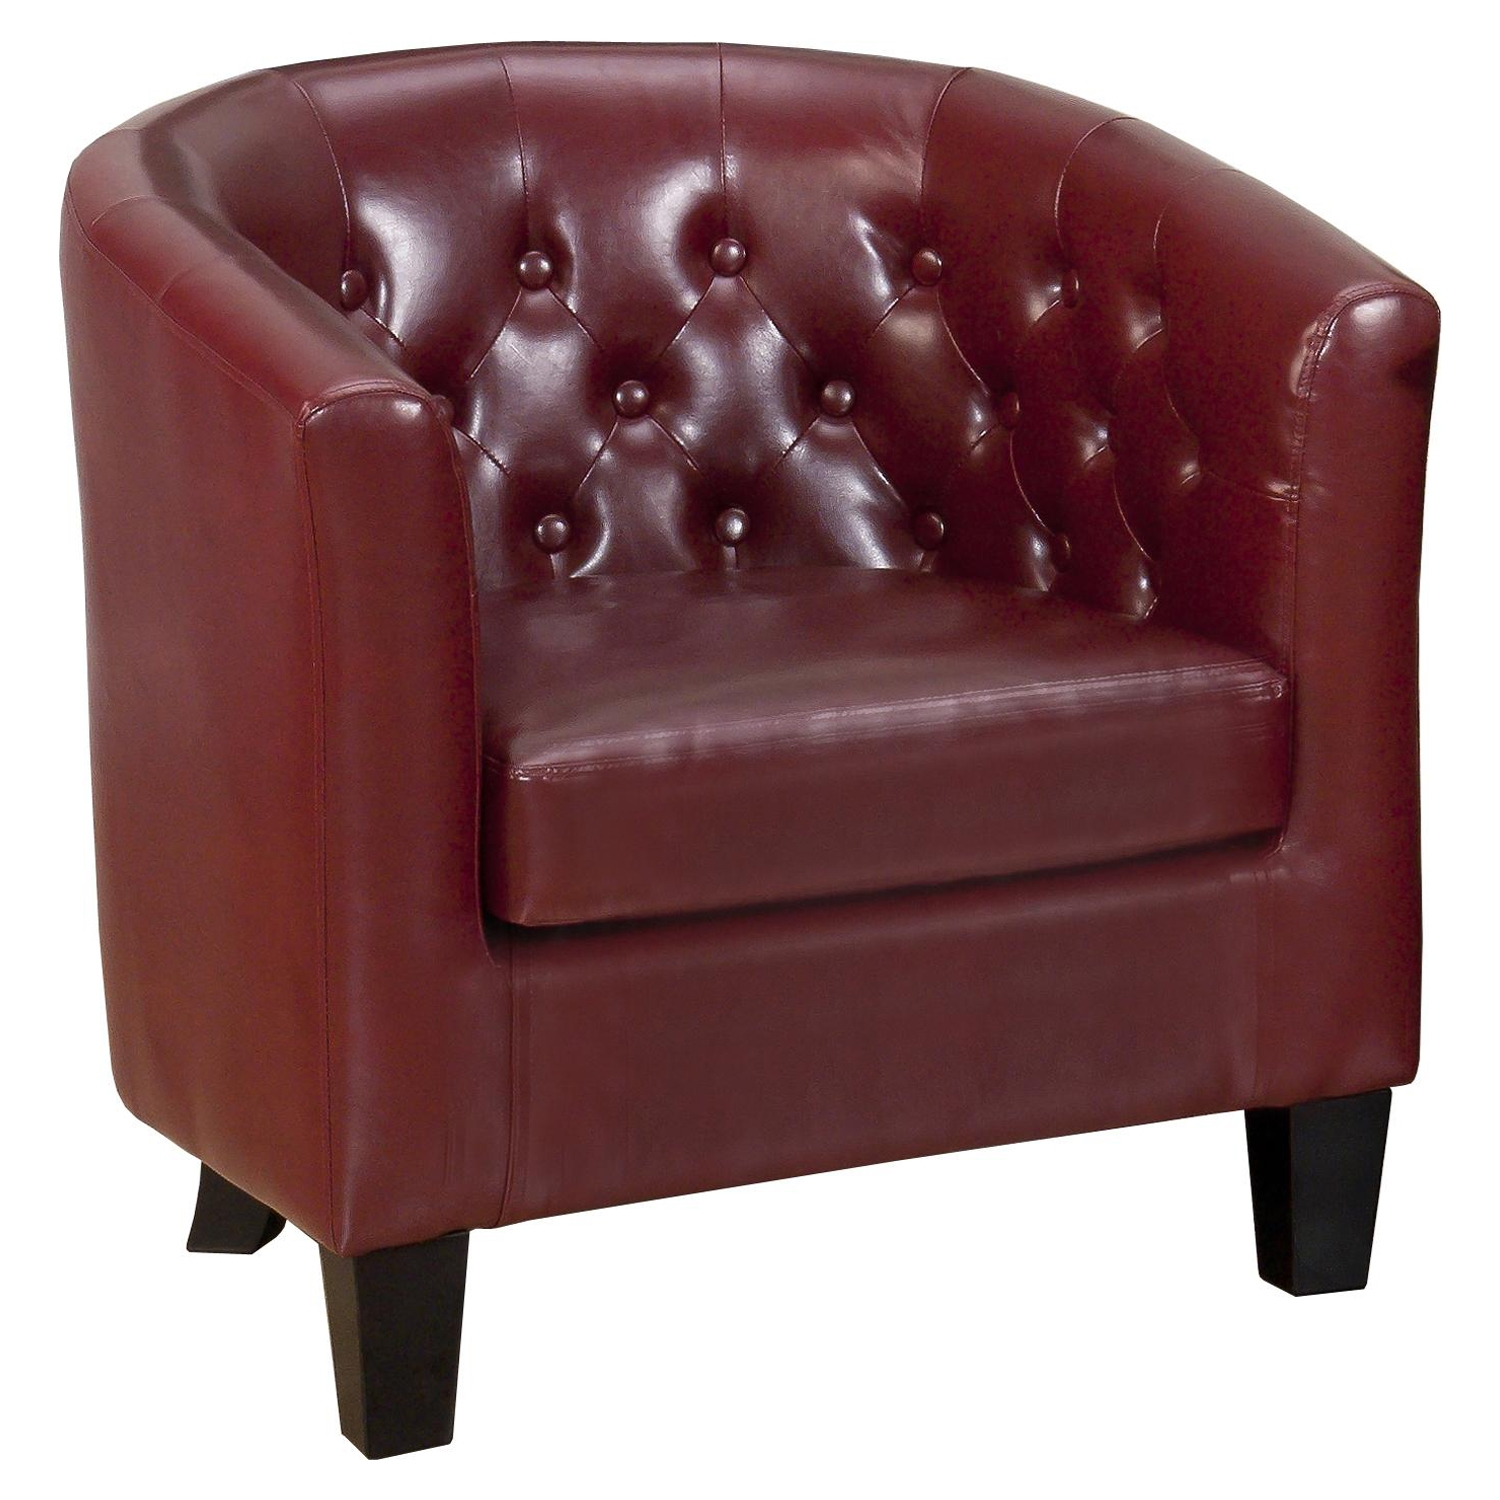 Gianni Tufted Club Chair - Red - JOFR-GIANNI-CH-RED